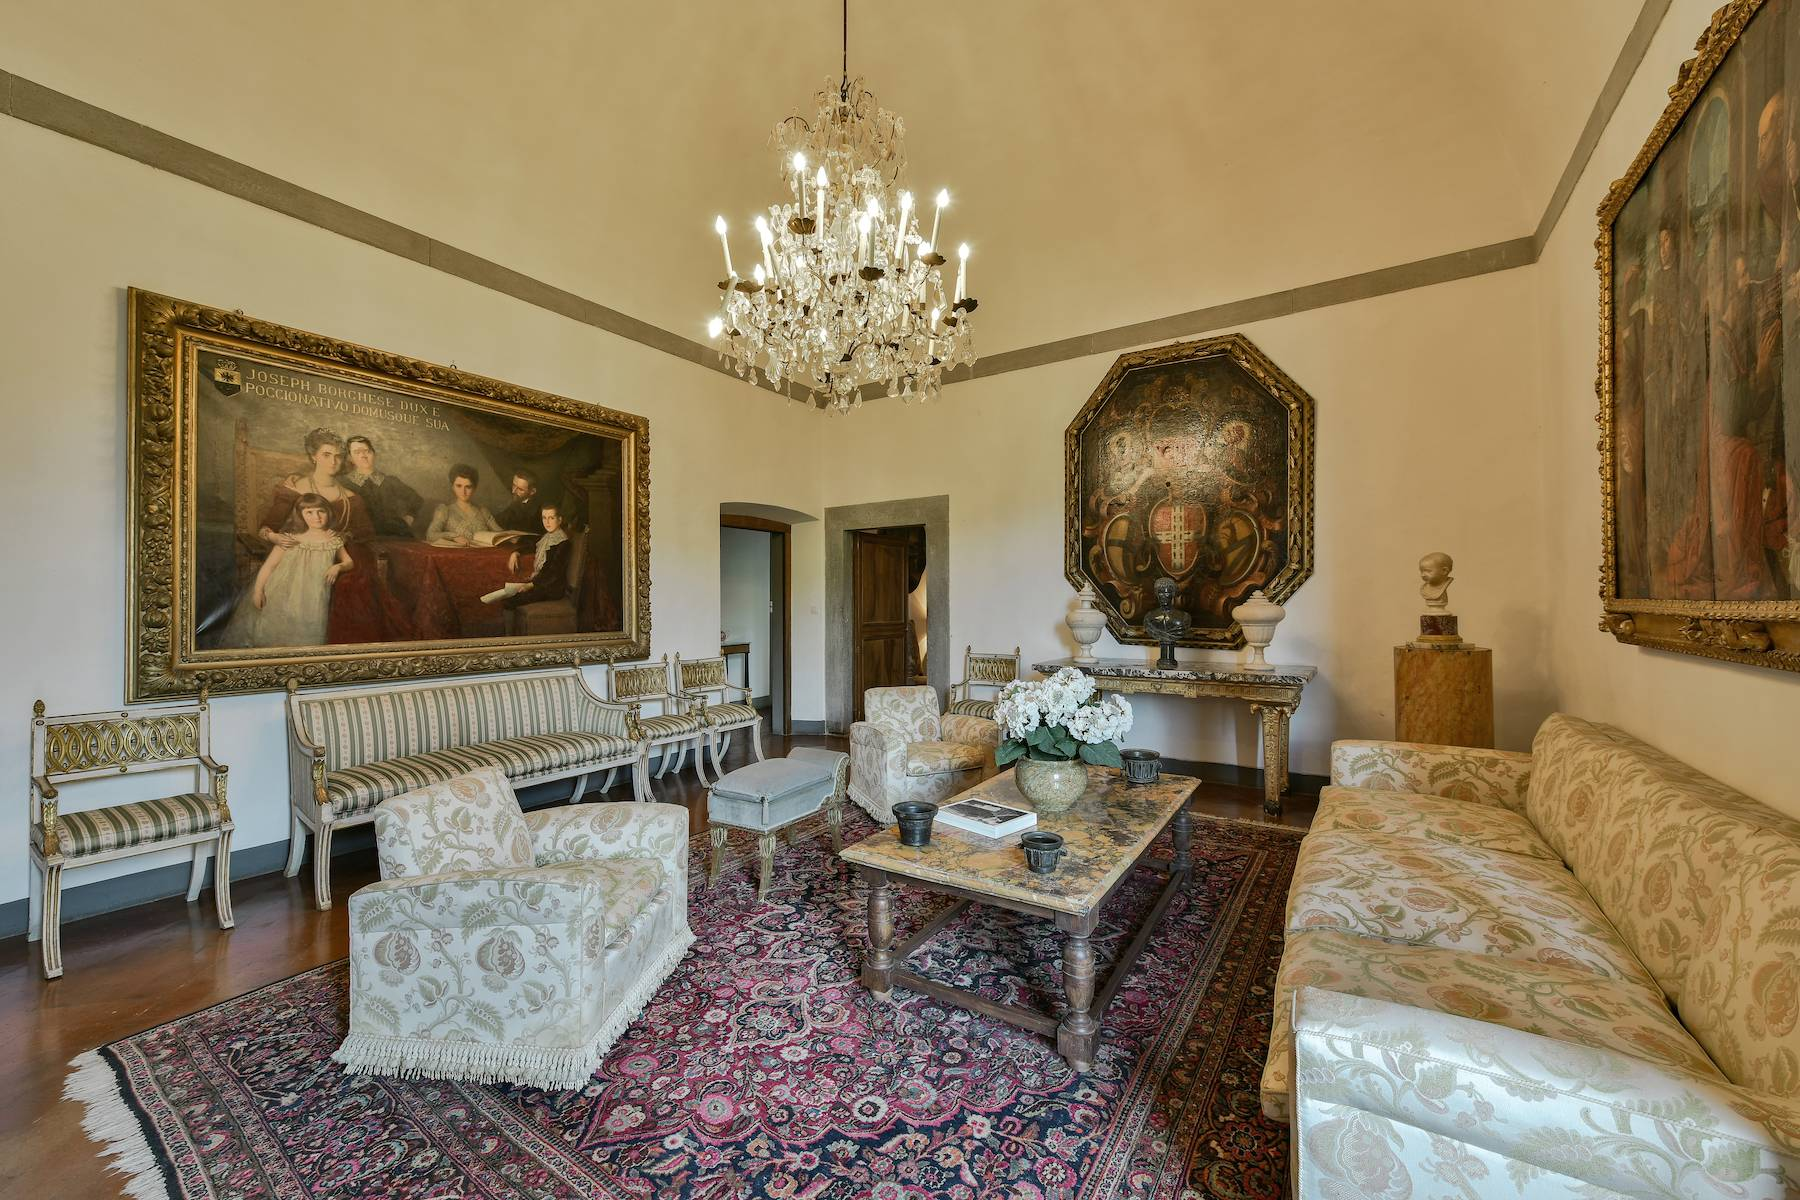 Majestic historical villa in the heart of Tuscany - 10